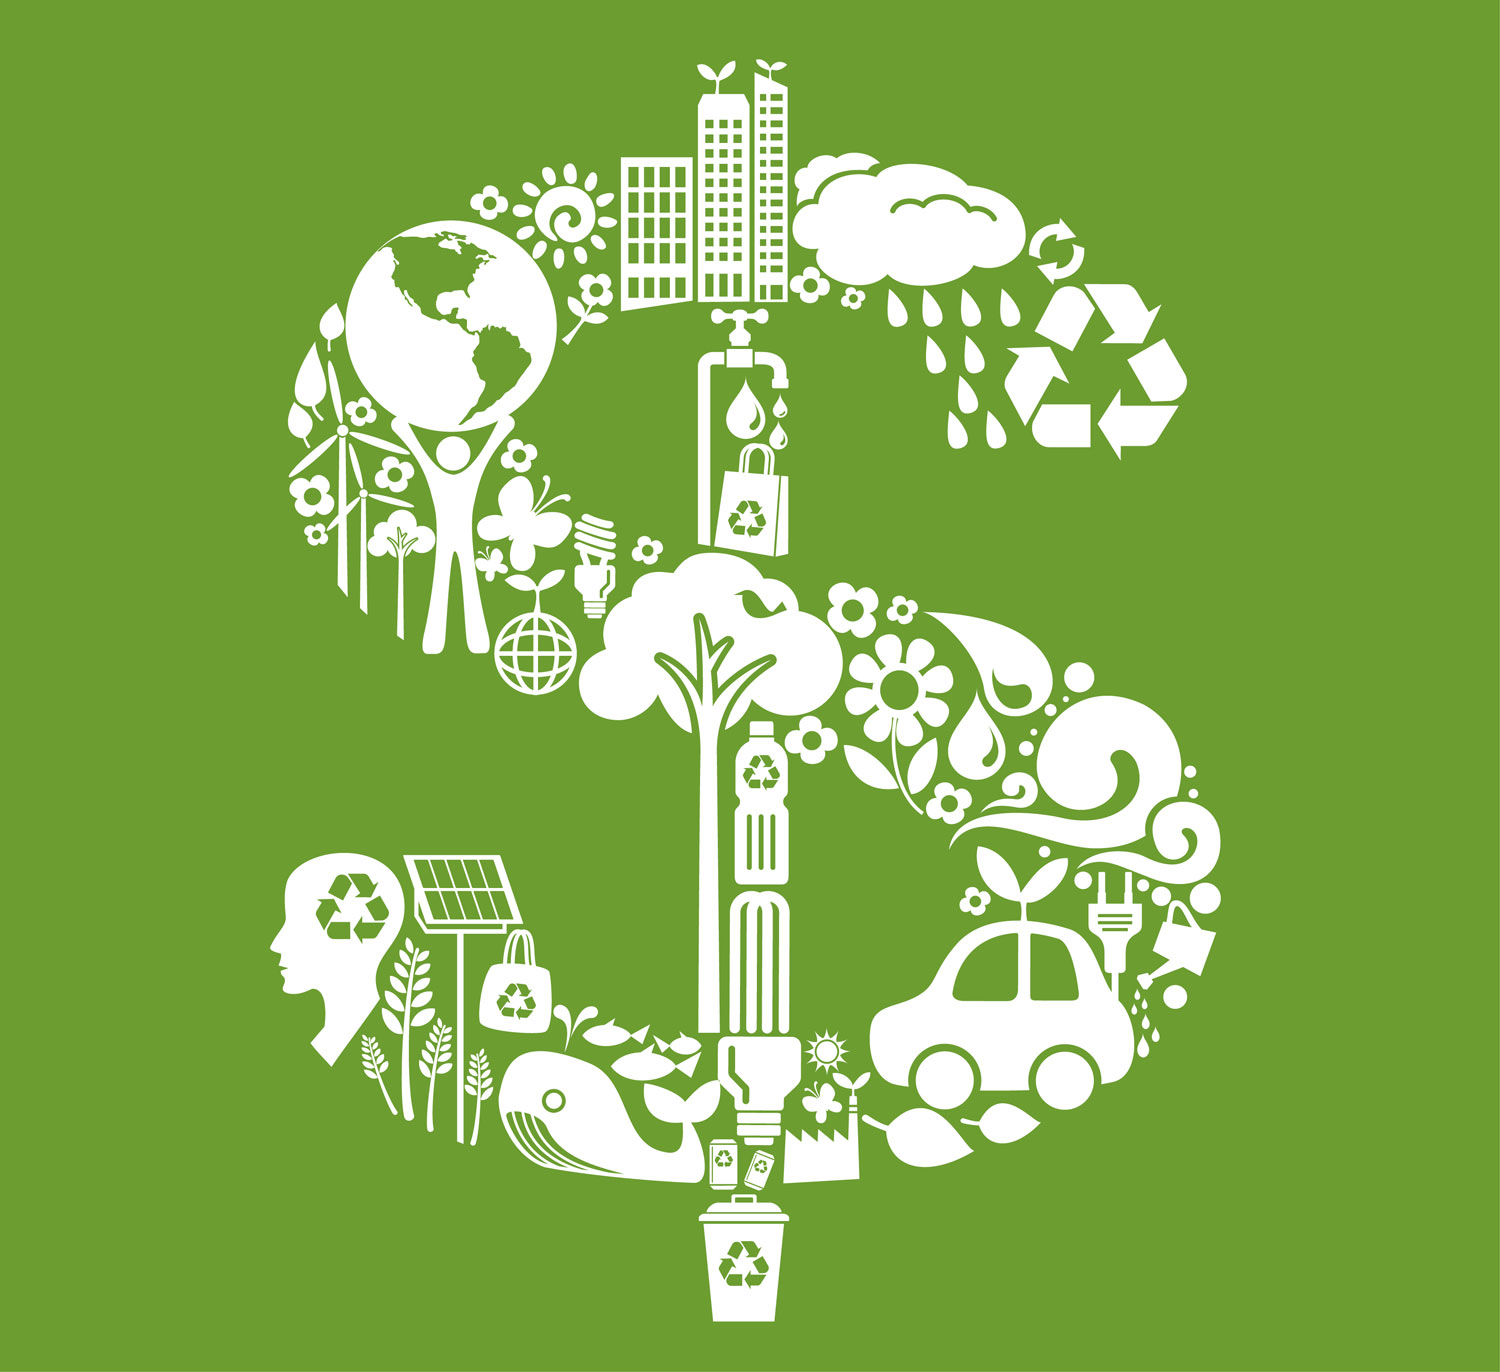 Famous Quotes About 'Environmental Protection'